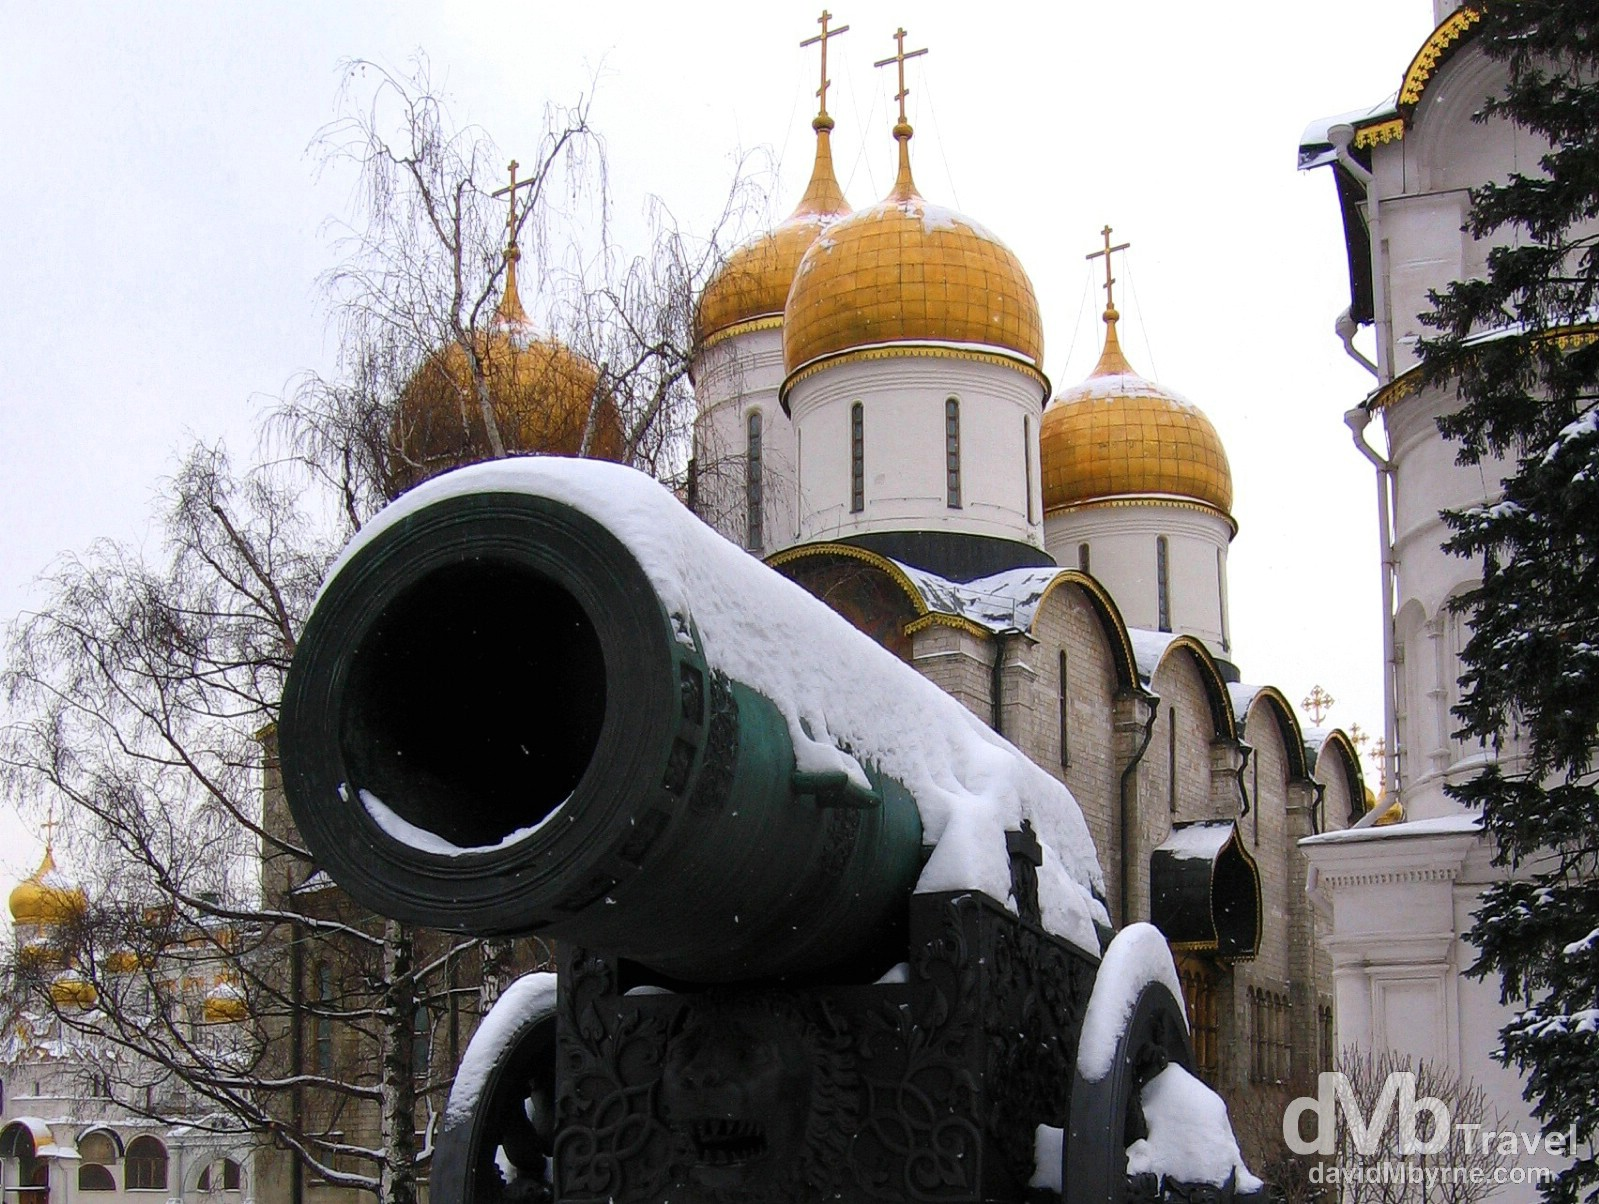 The massive Tsar Canon in front of the Assumption Cathedral in the grounds of the Kremlin in Moscow, Russia. February 26, 2006.